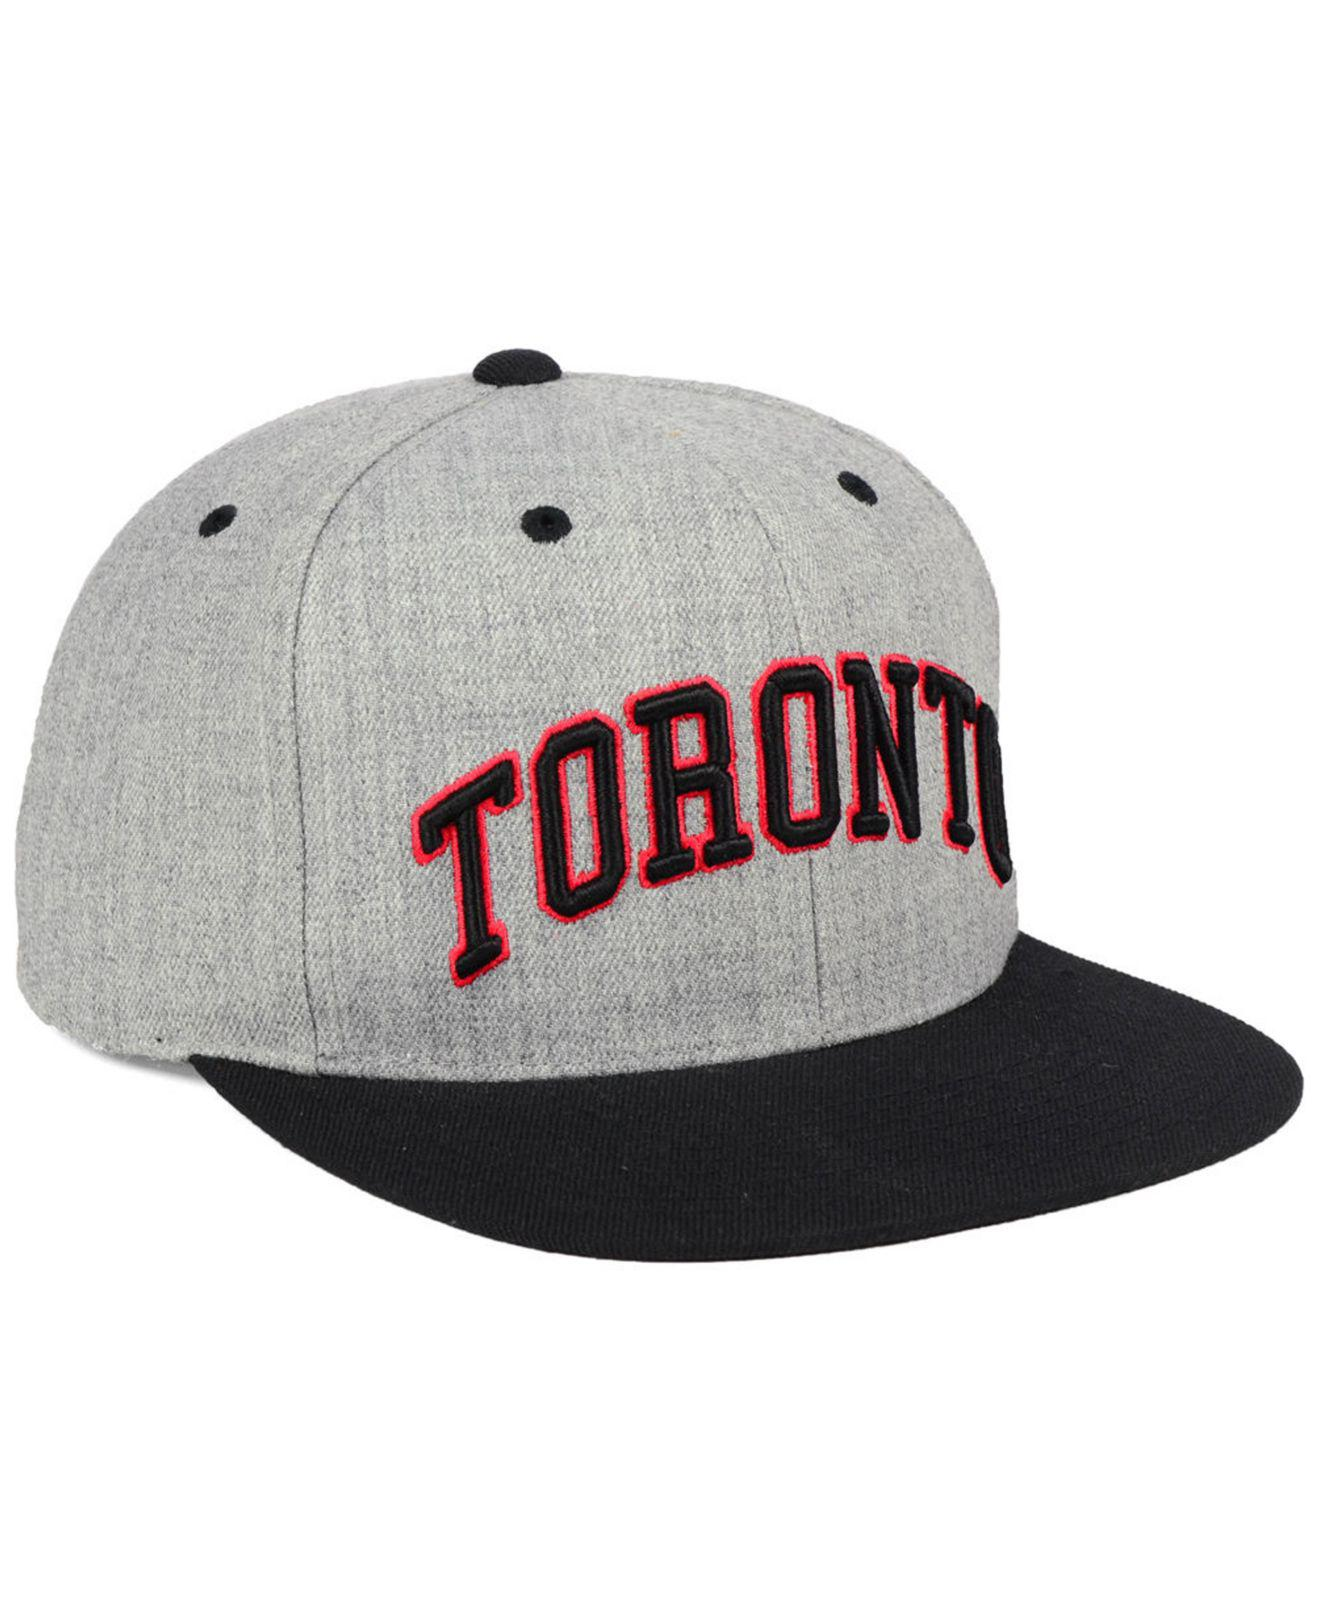 promo code c4698 d77b2 ... promo code for mitchell ness gray toronto raptors side panel cropped  snapback cap for men lyst